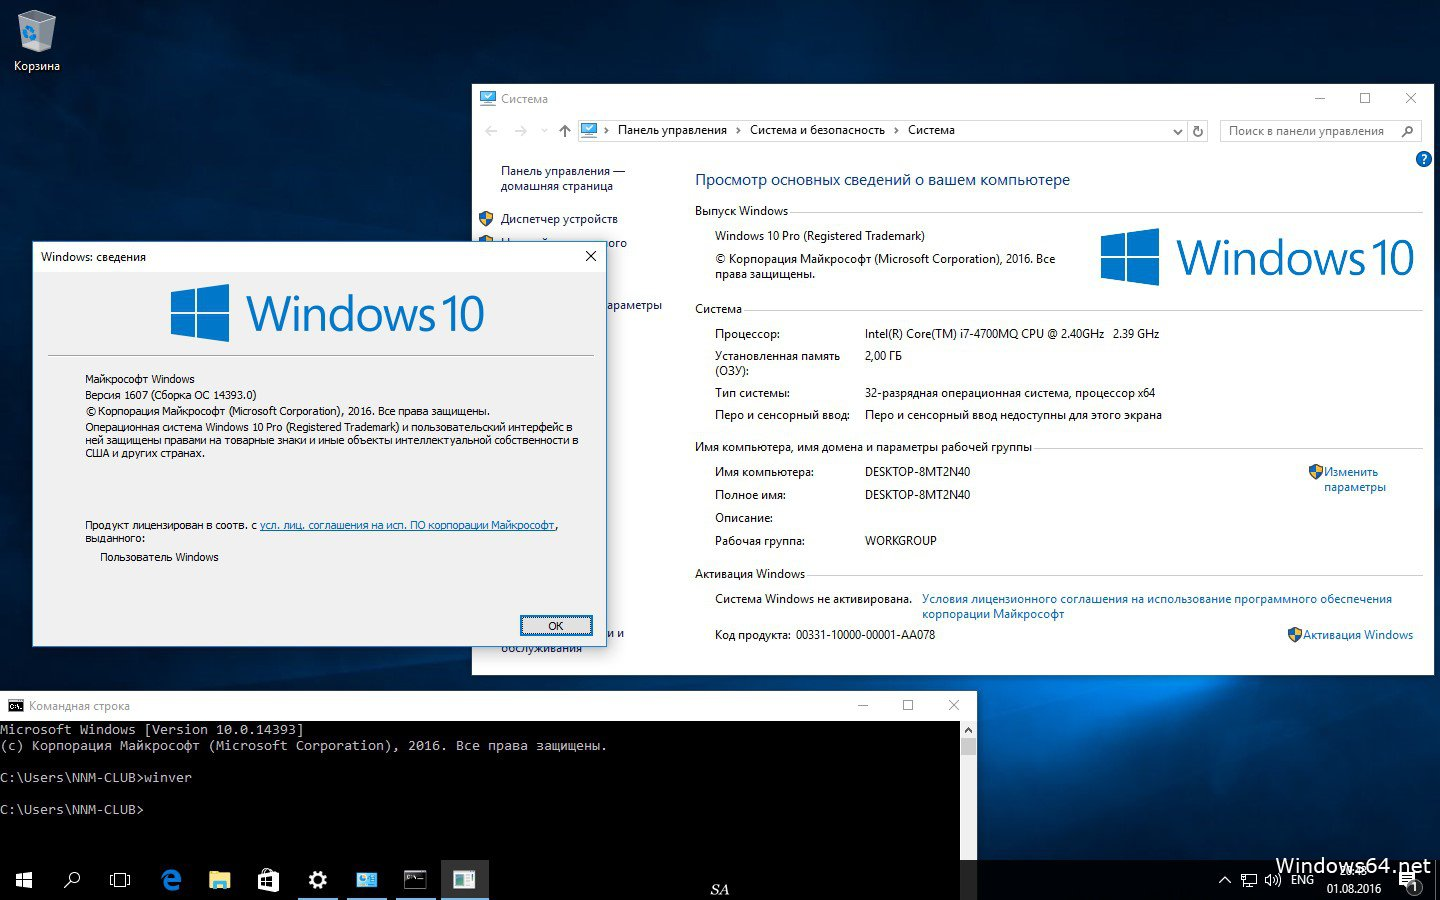 Iso windows 10 pro x64 for Window 10 iso